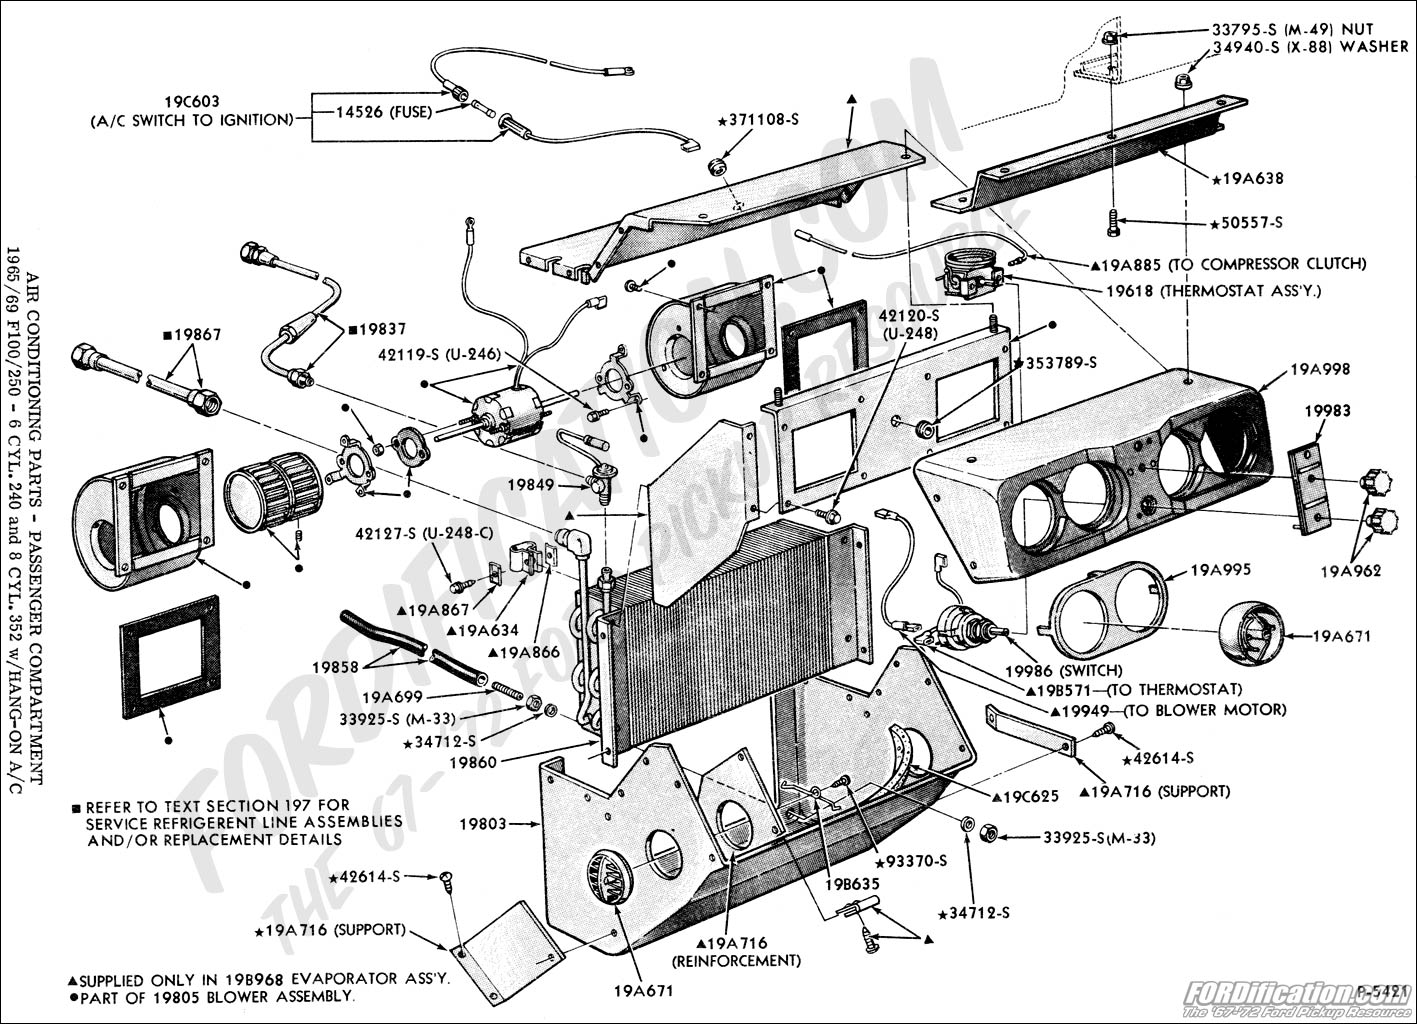 fuse diagram ford f 250 2000 4x4 ford truck technical drawings and schematics - section f ... wiring diagram ford f 250 air conditioning